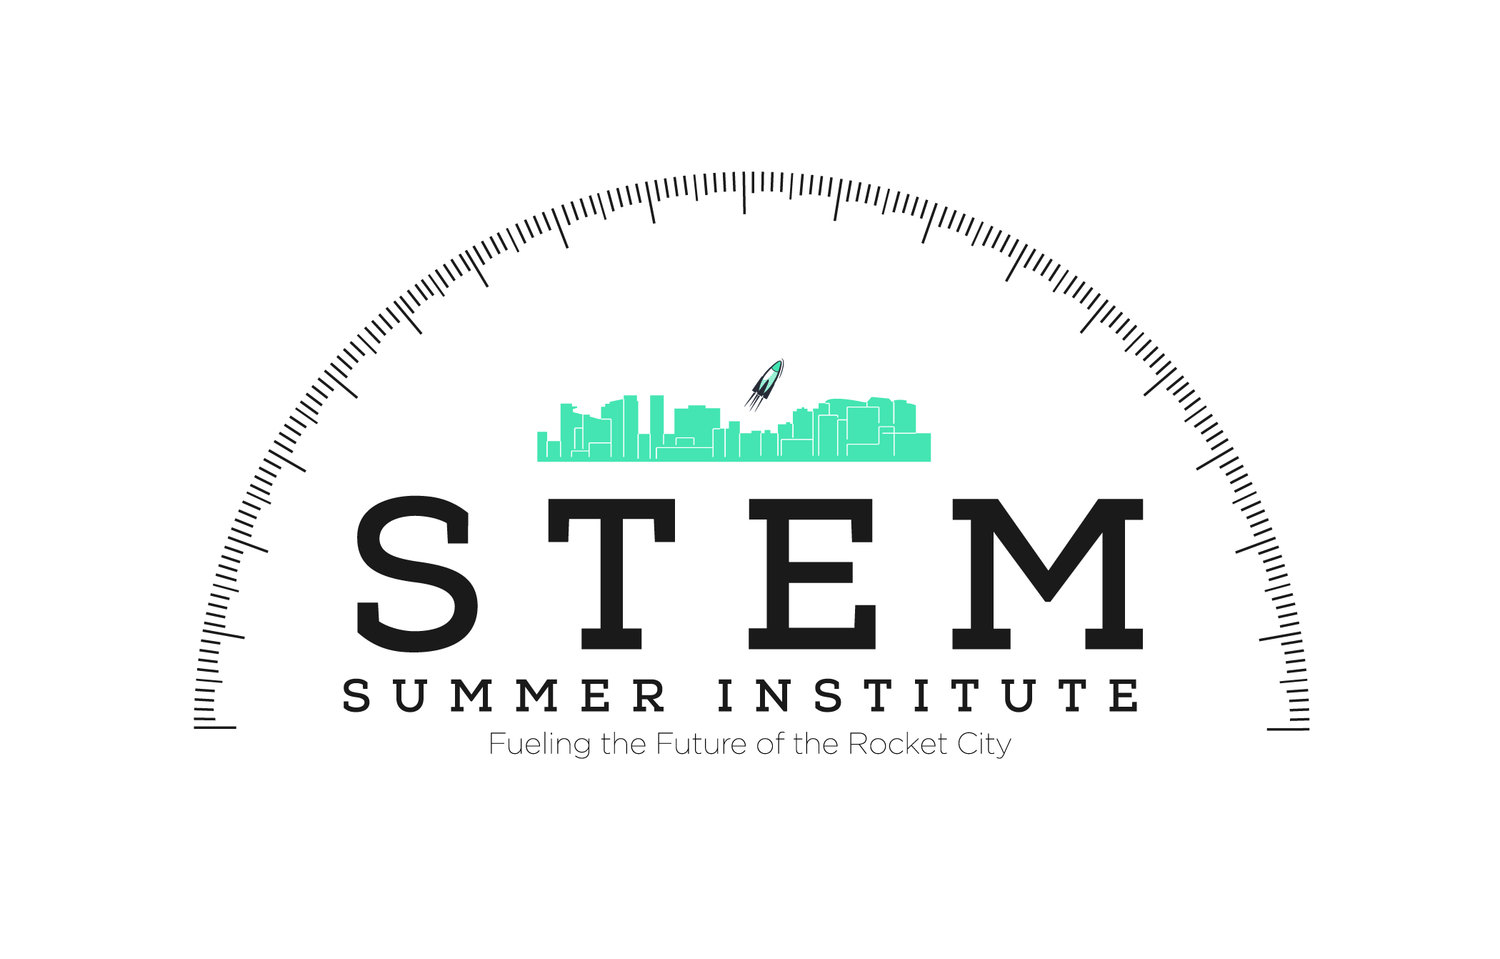 STEM Summer Institute